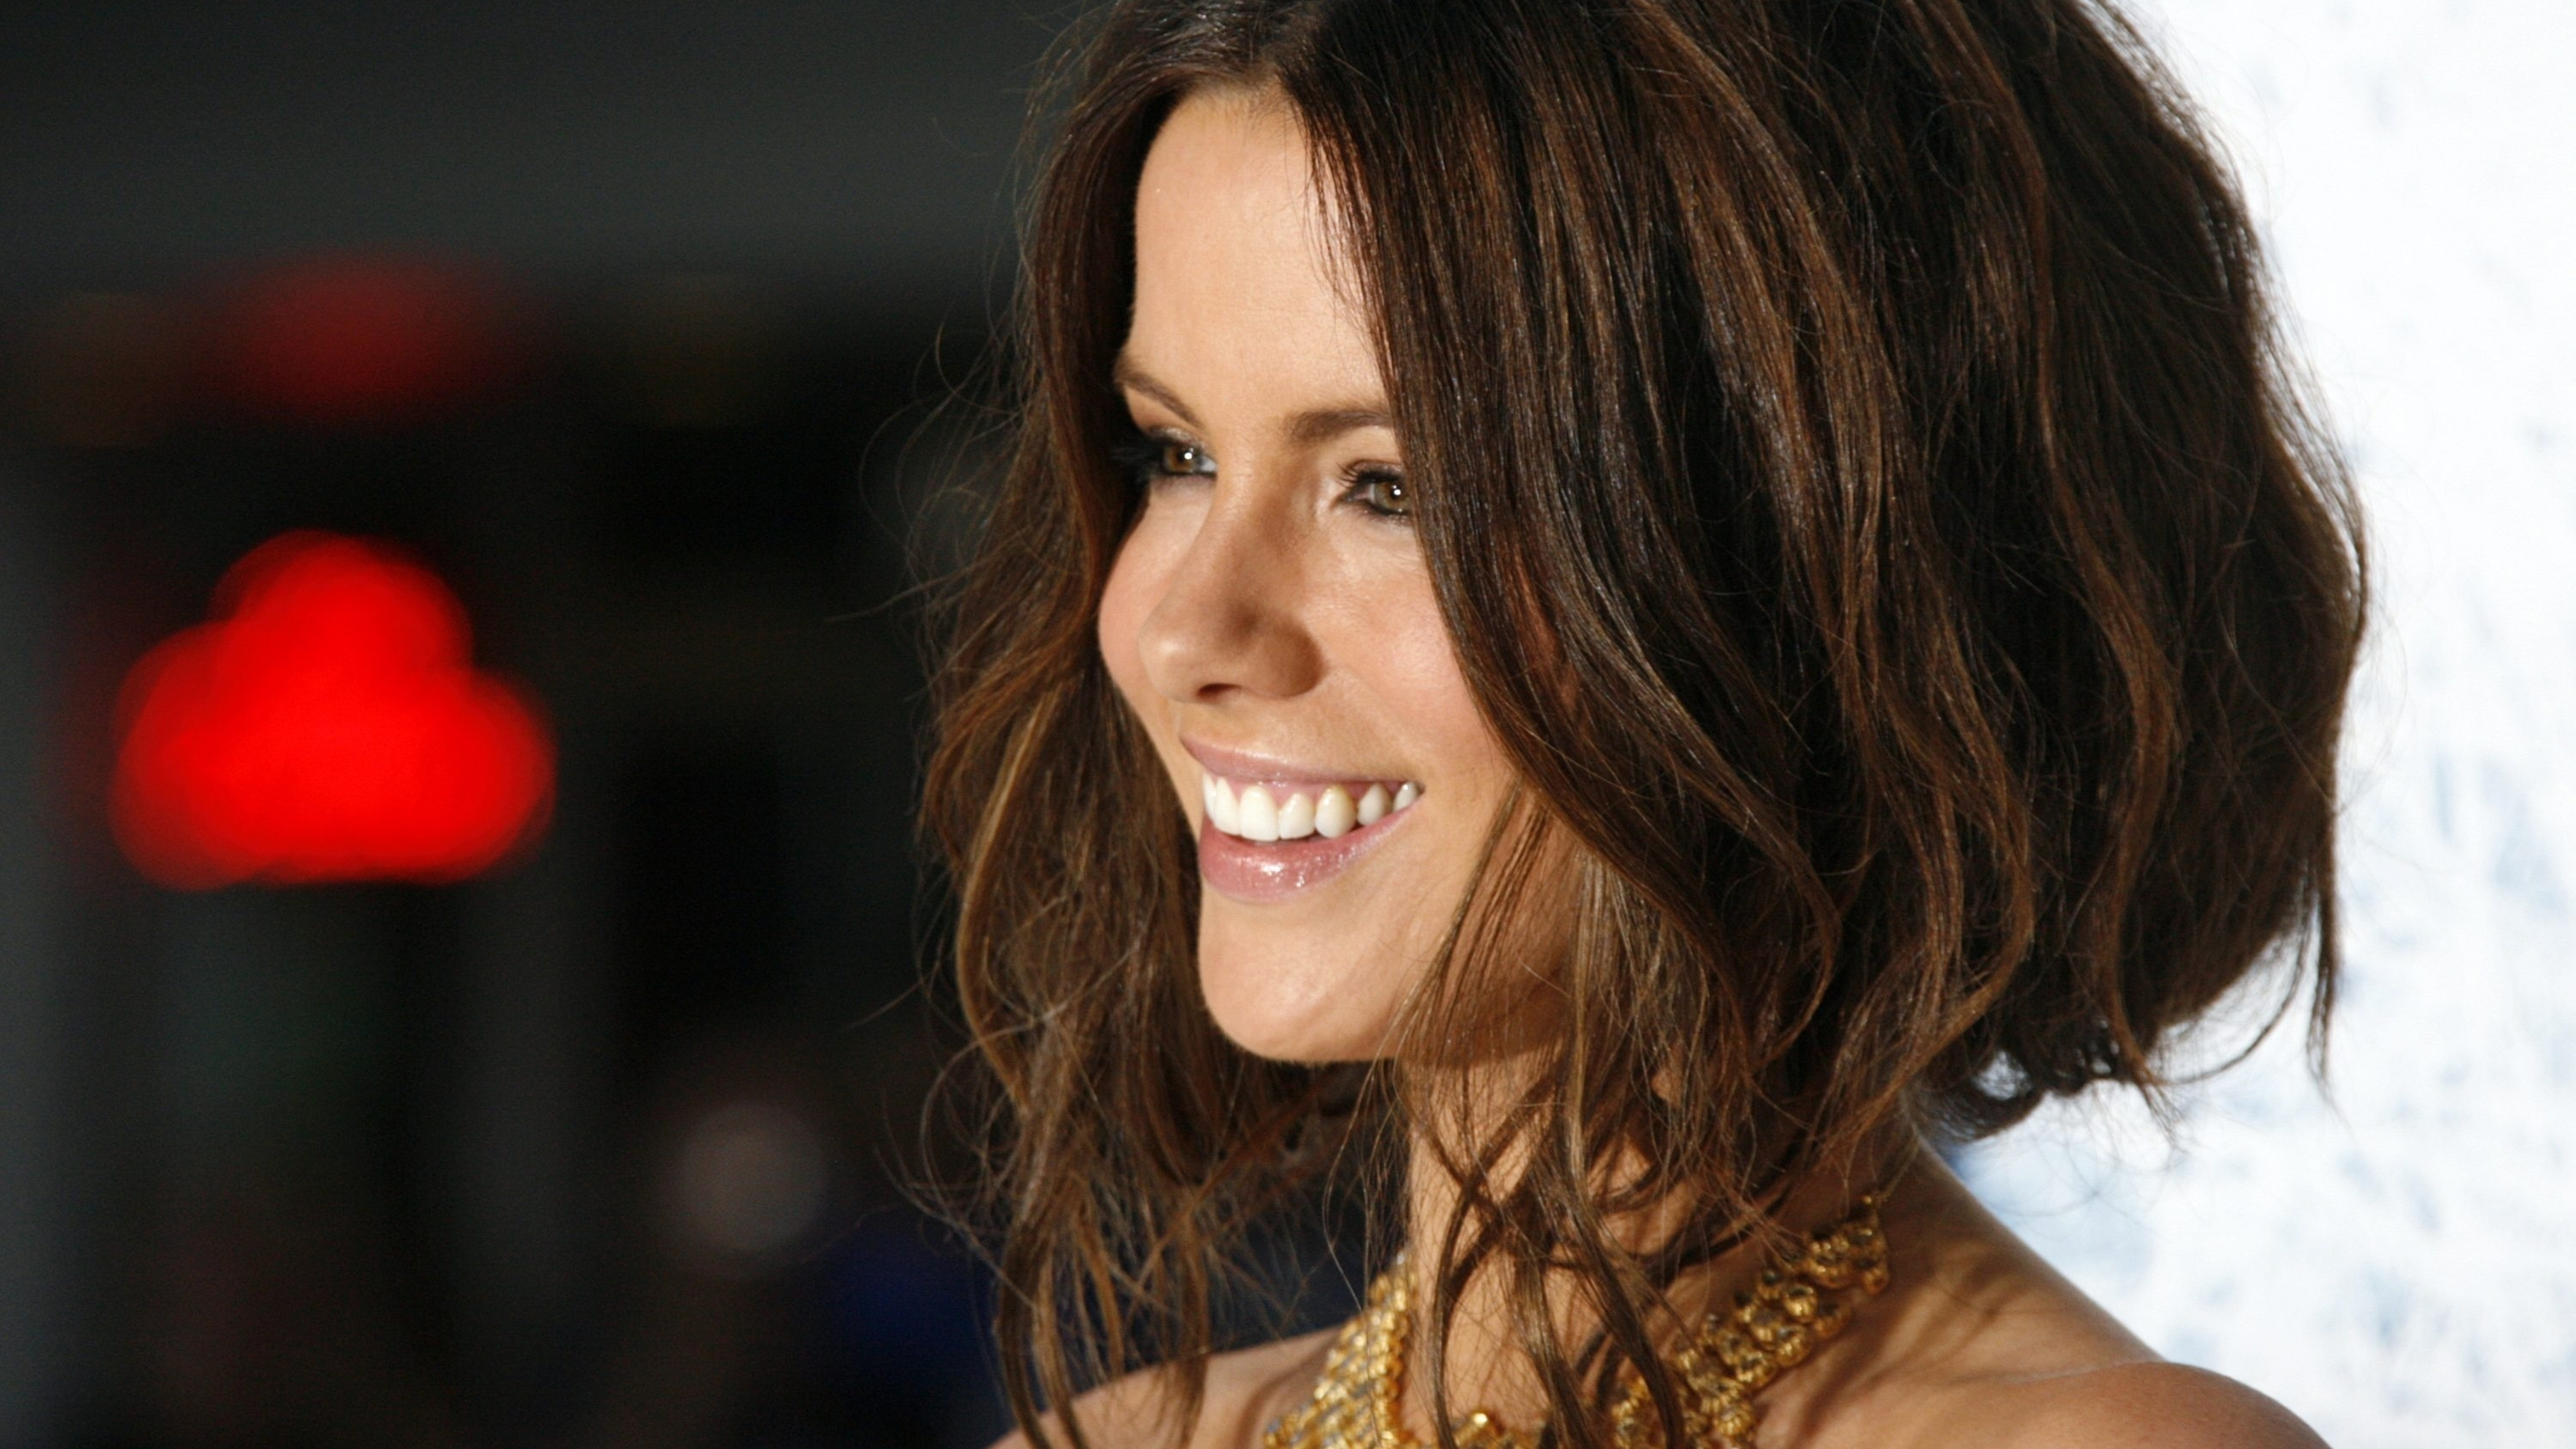 5120x2880 Kate Beckinsale Short Hair Images 5k Wallpaper Hd Celebrities 4k Wallpapers Images Photos And Background